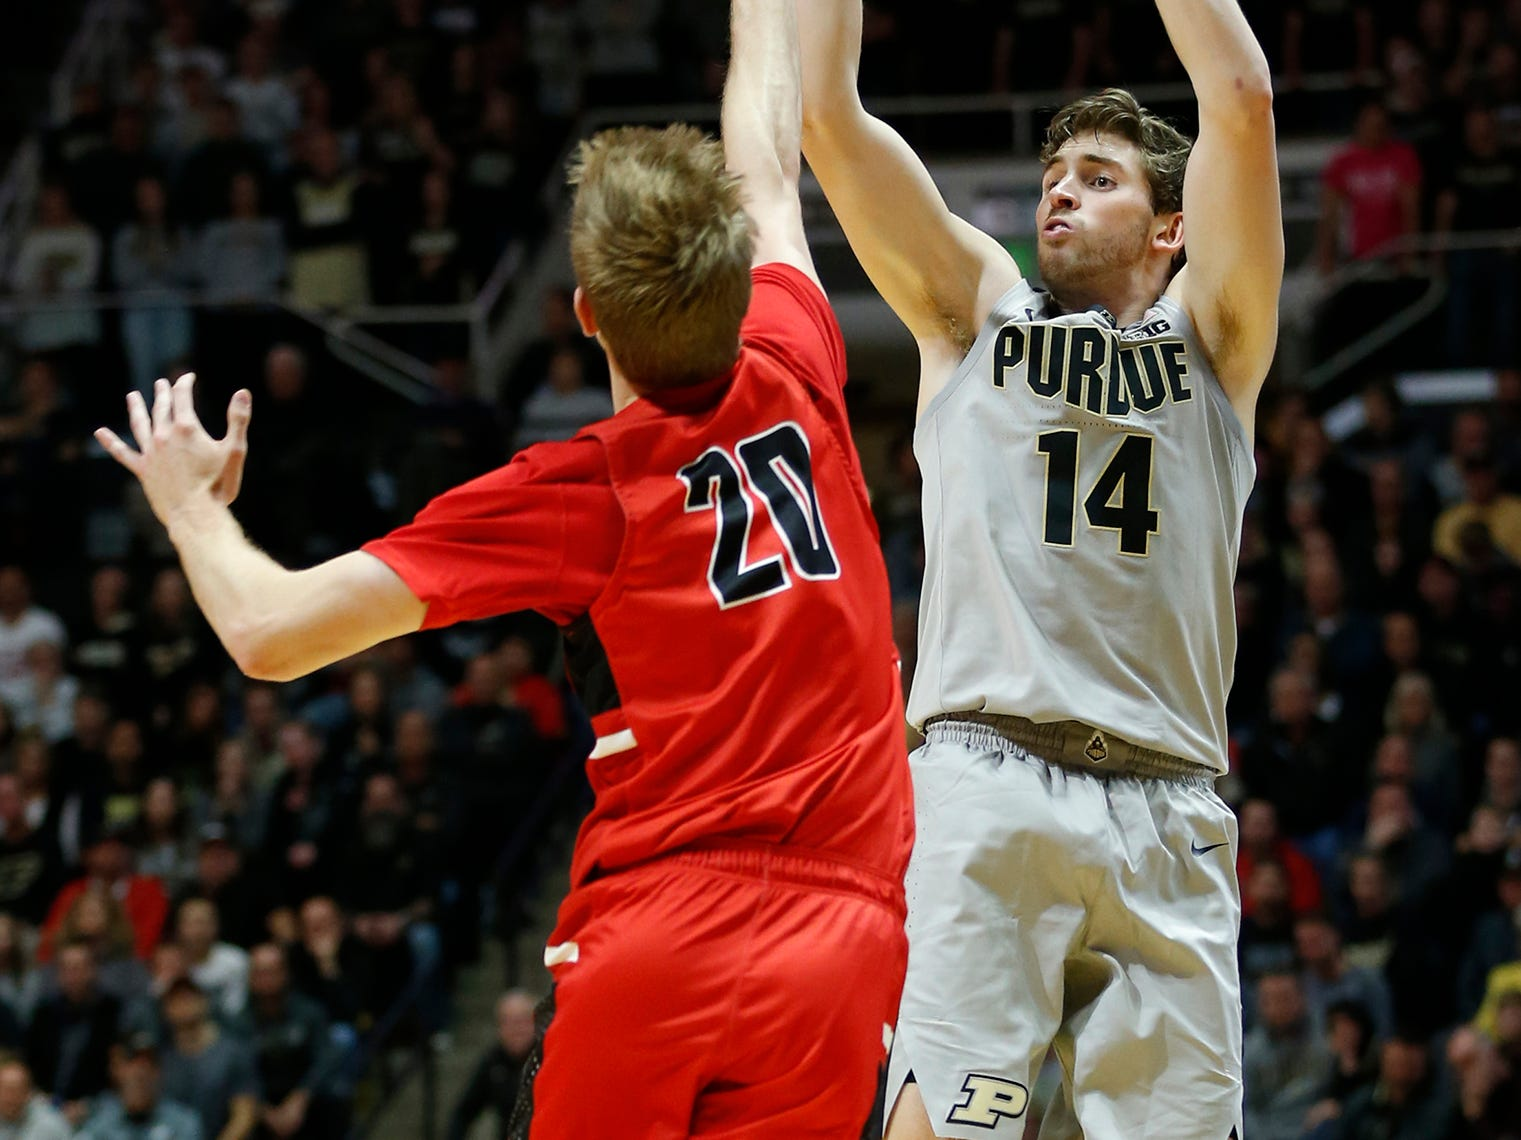 Ryan Cline of Purdue with a three-point shot over Austin Nehls of Ball State Saturday, November 10, 2018, at Mackey Arena. Purdue defeated Ball State 84-75.